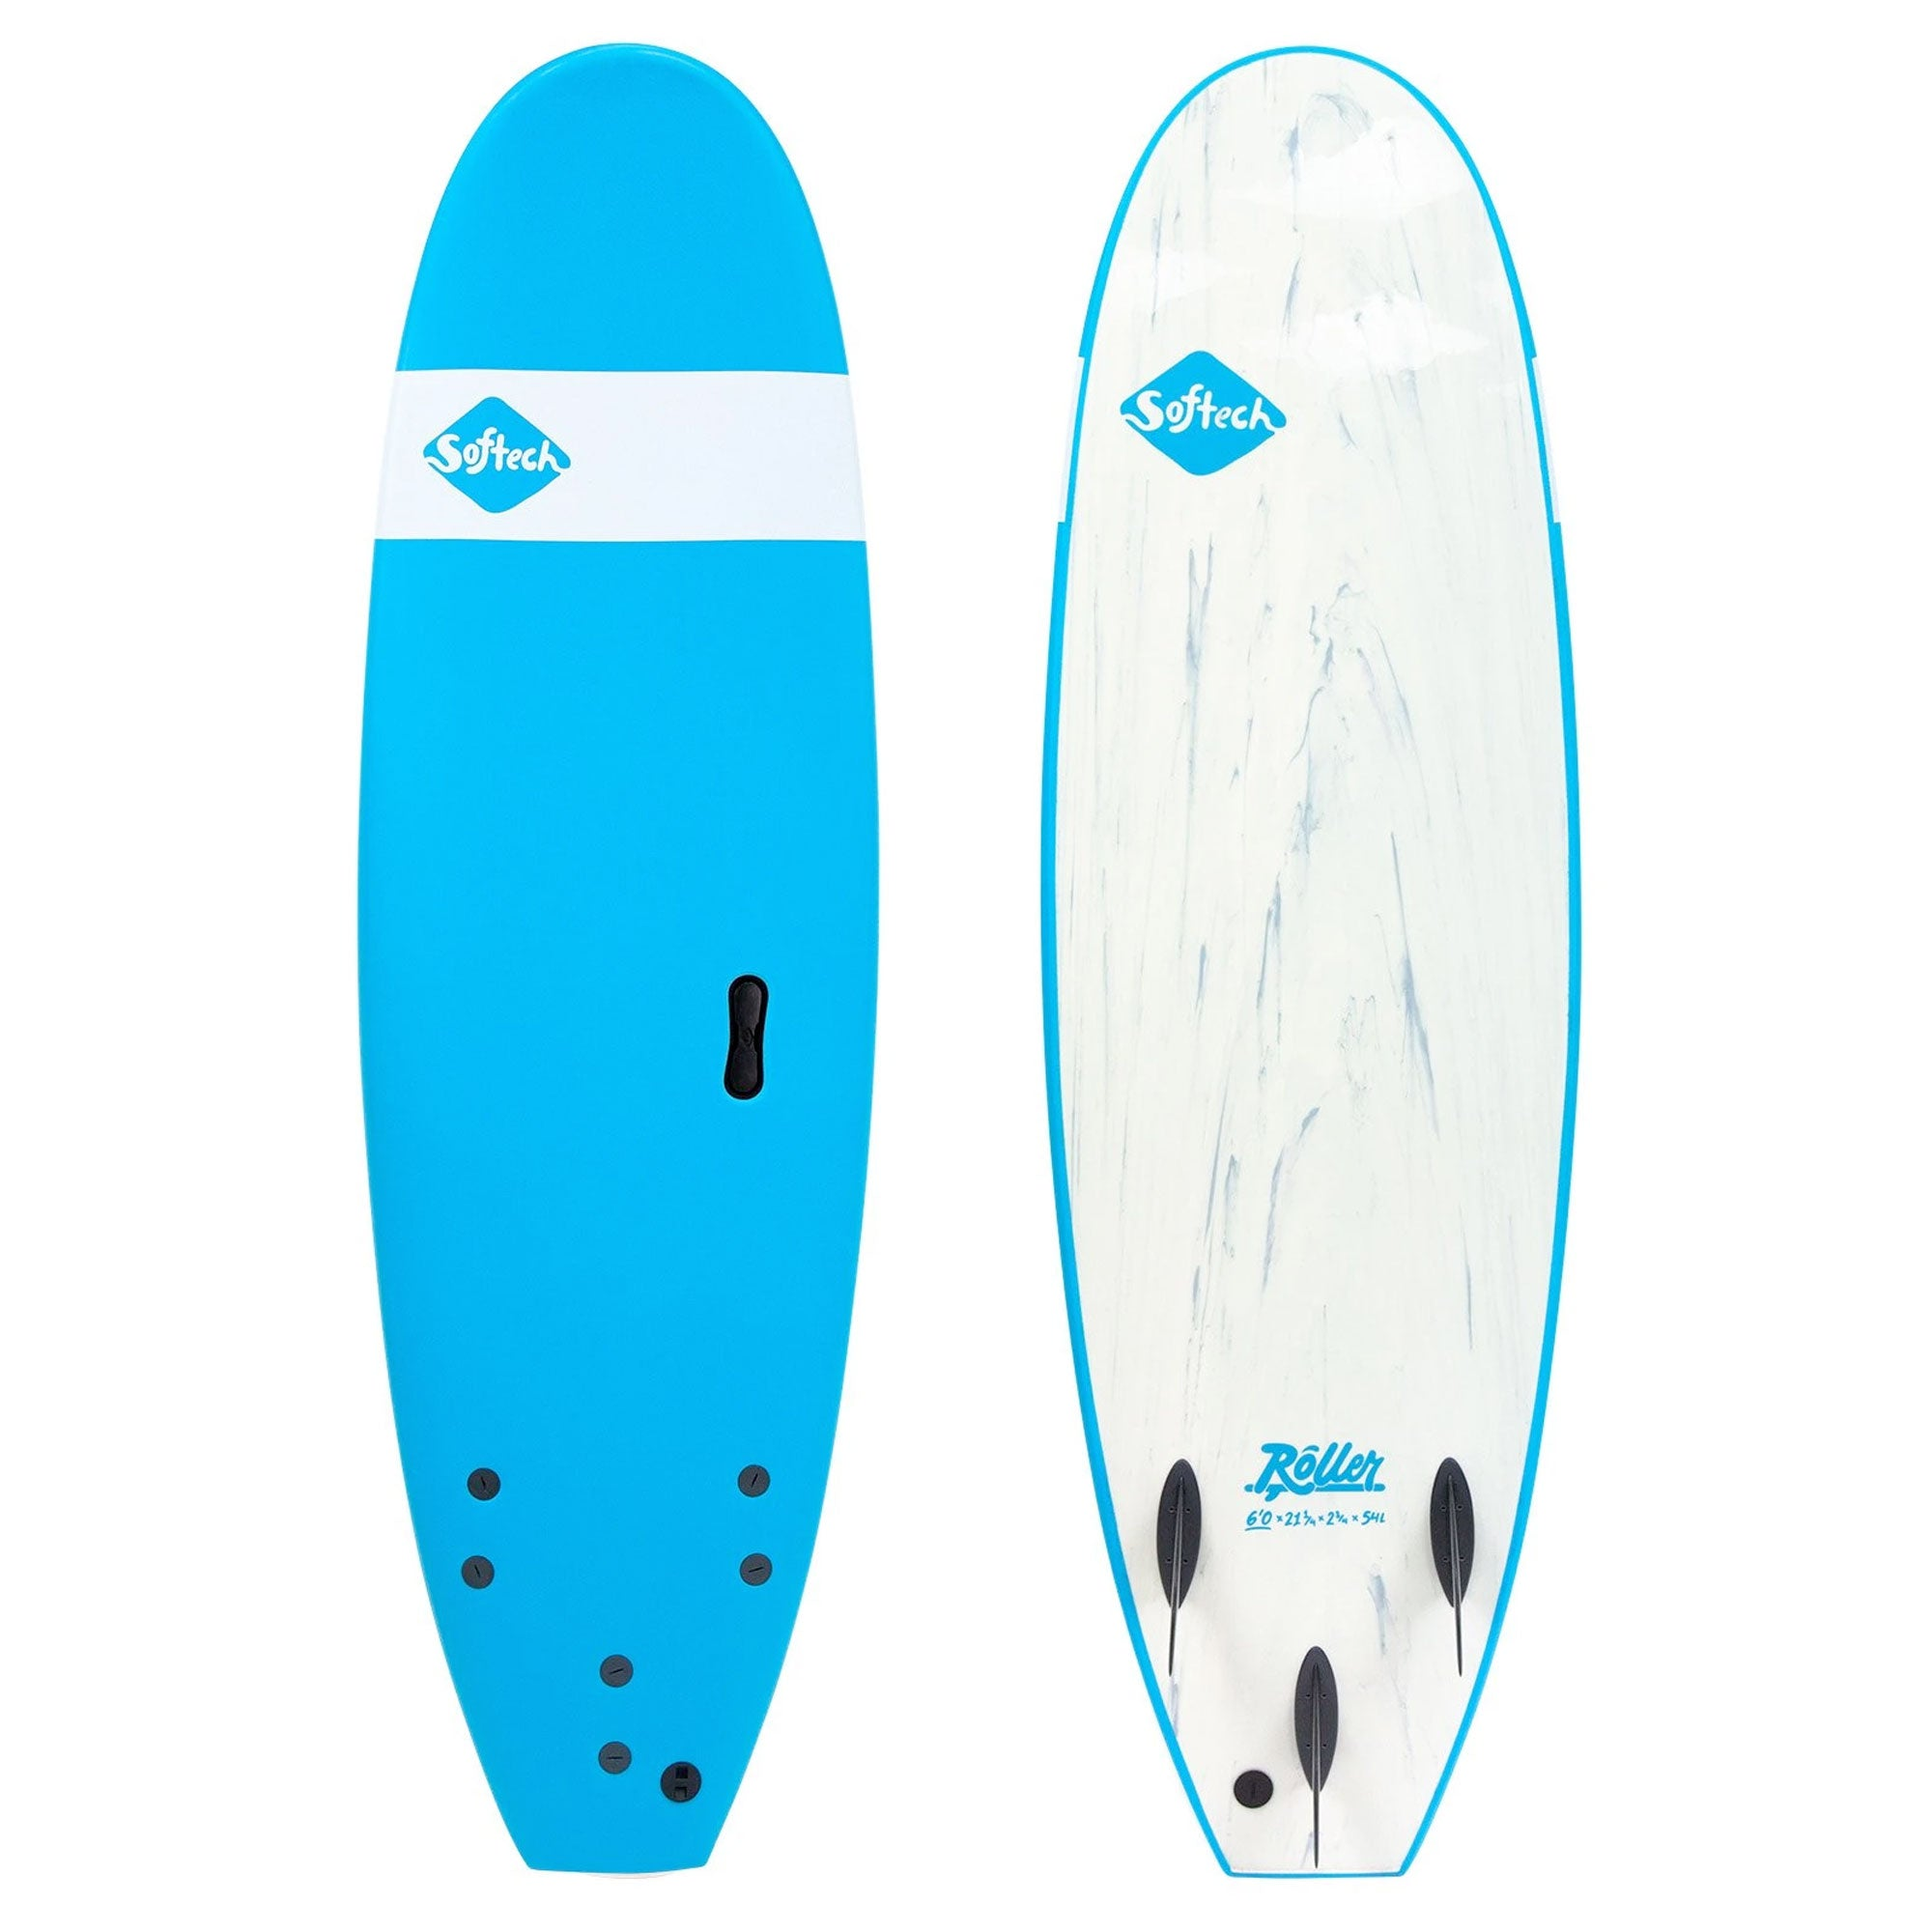 Softech Roller Soft Surfboard